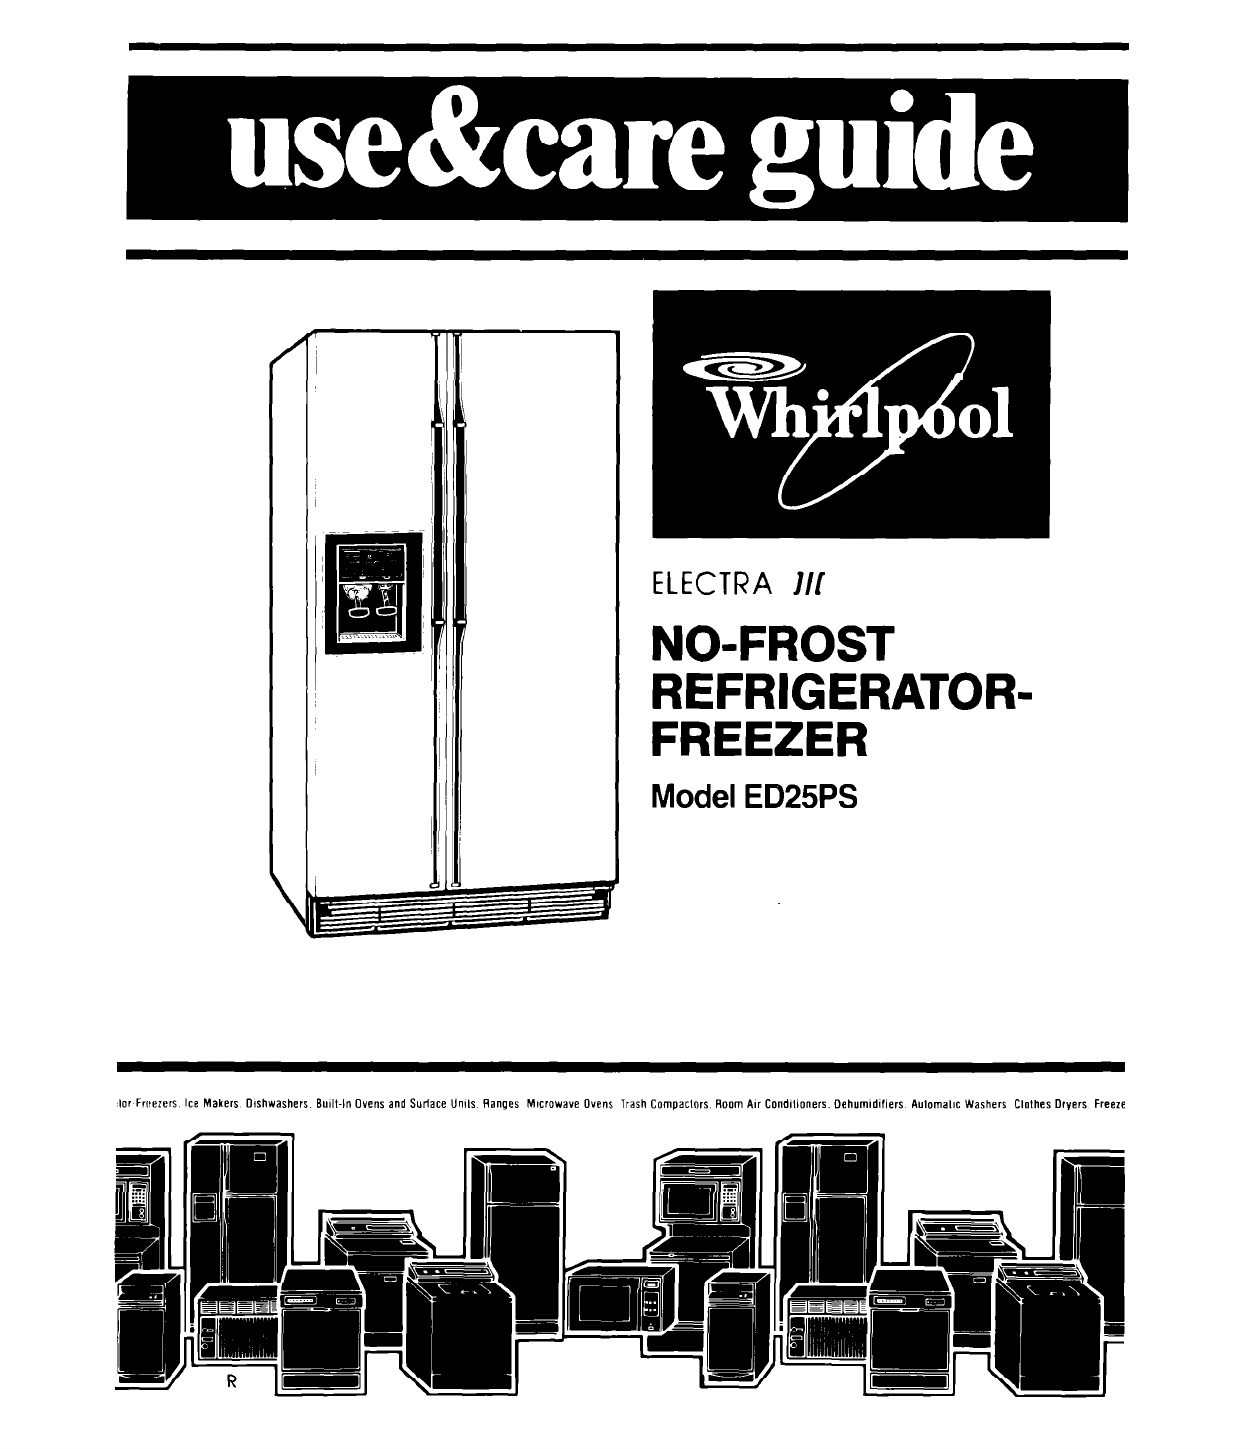 Air Refrigerator Working On Bell Manual Guide